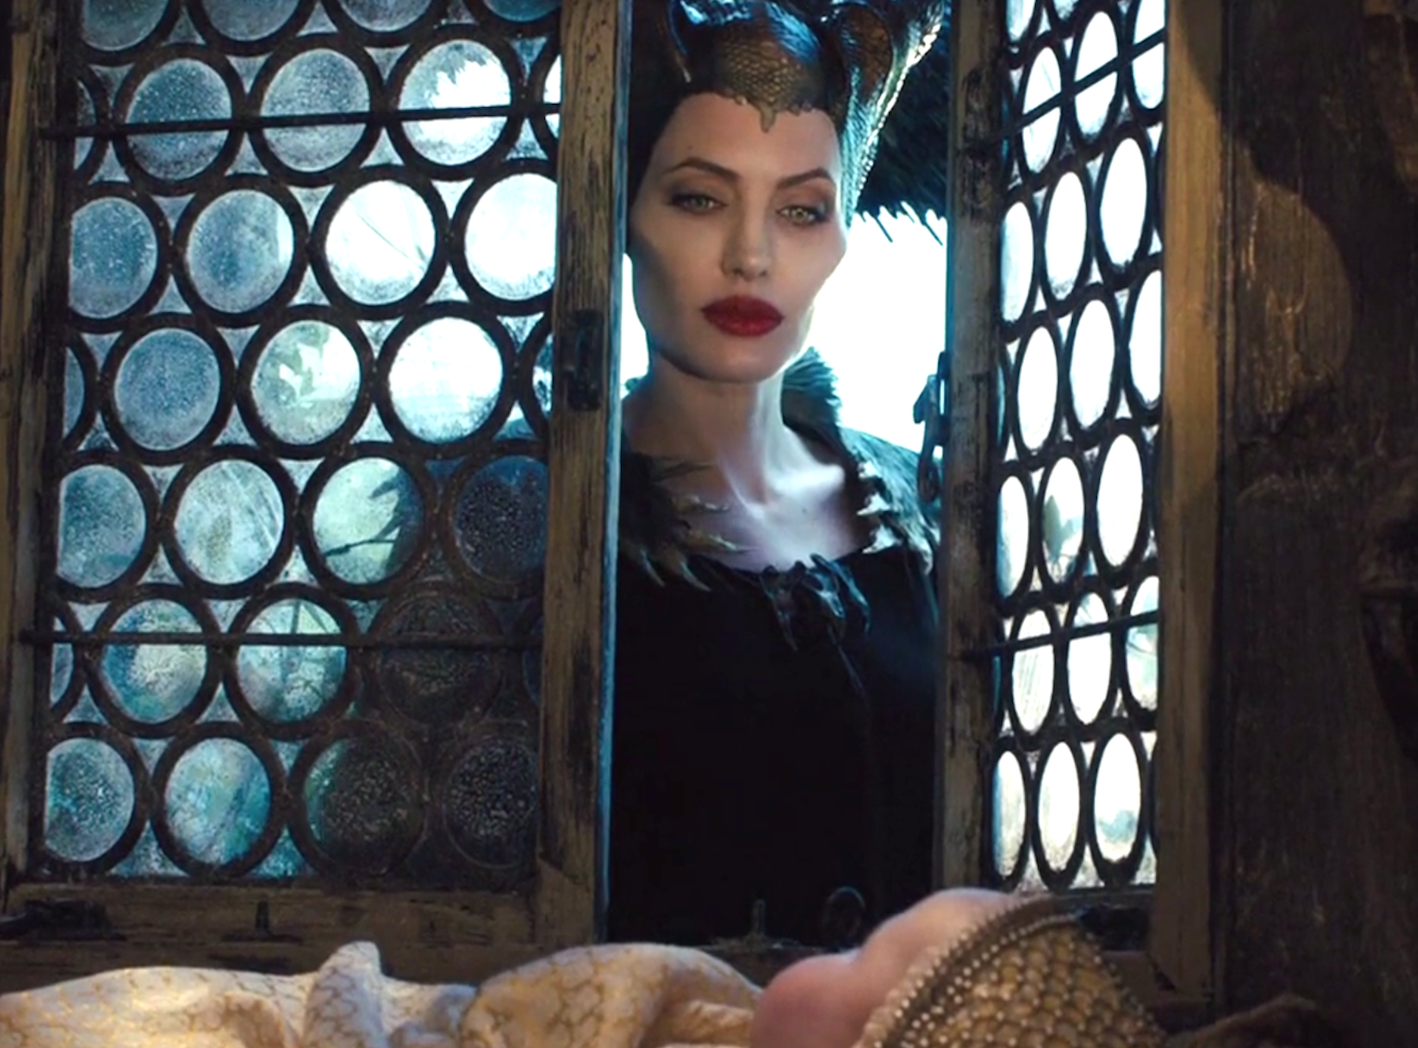 Maleficent 2014 Definitely Not Your Typical Disney Evil Queen The Movie My Life